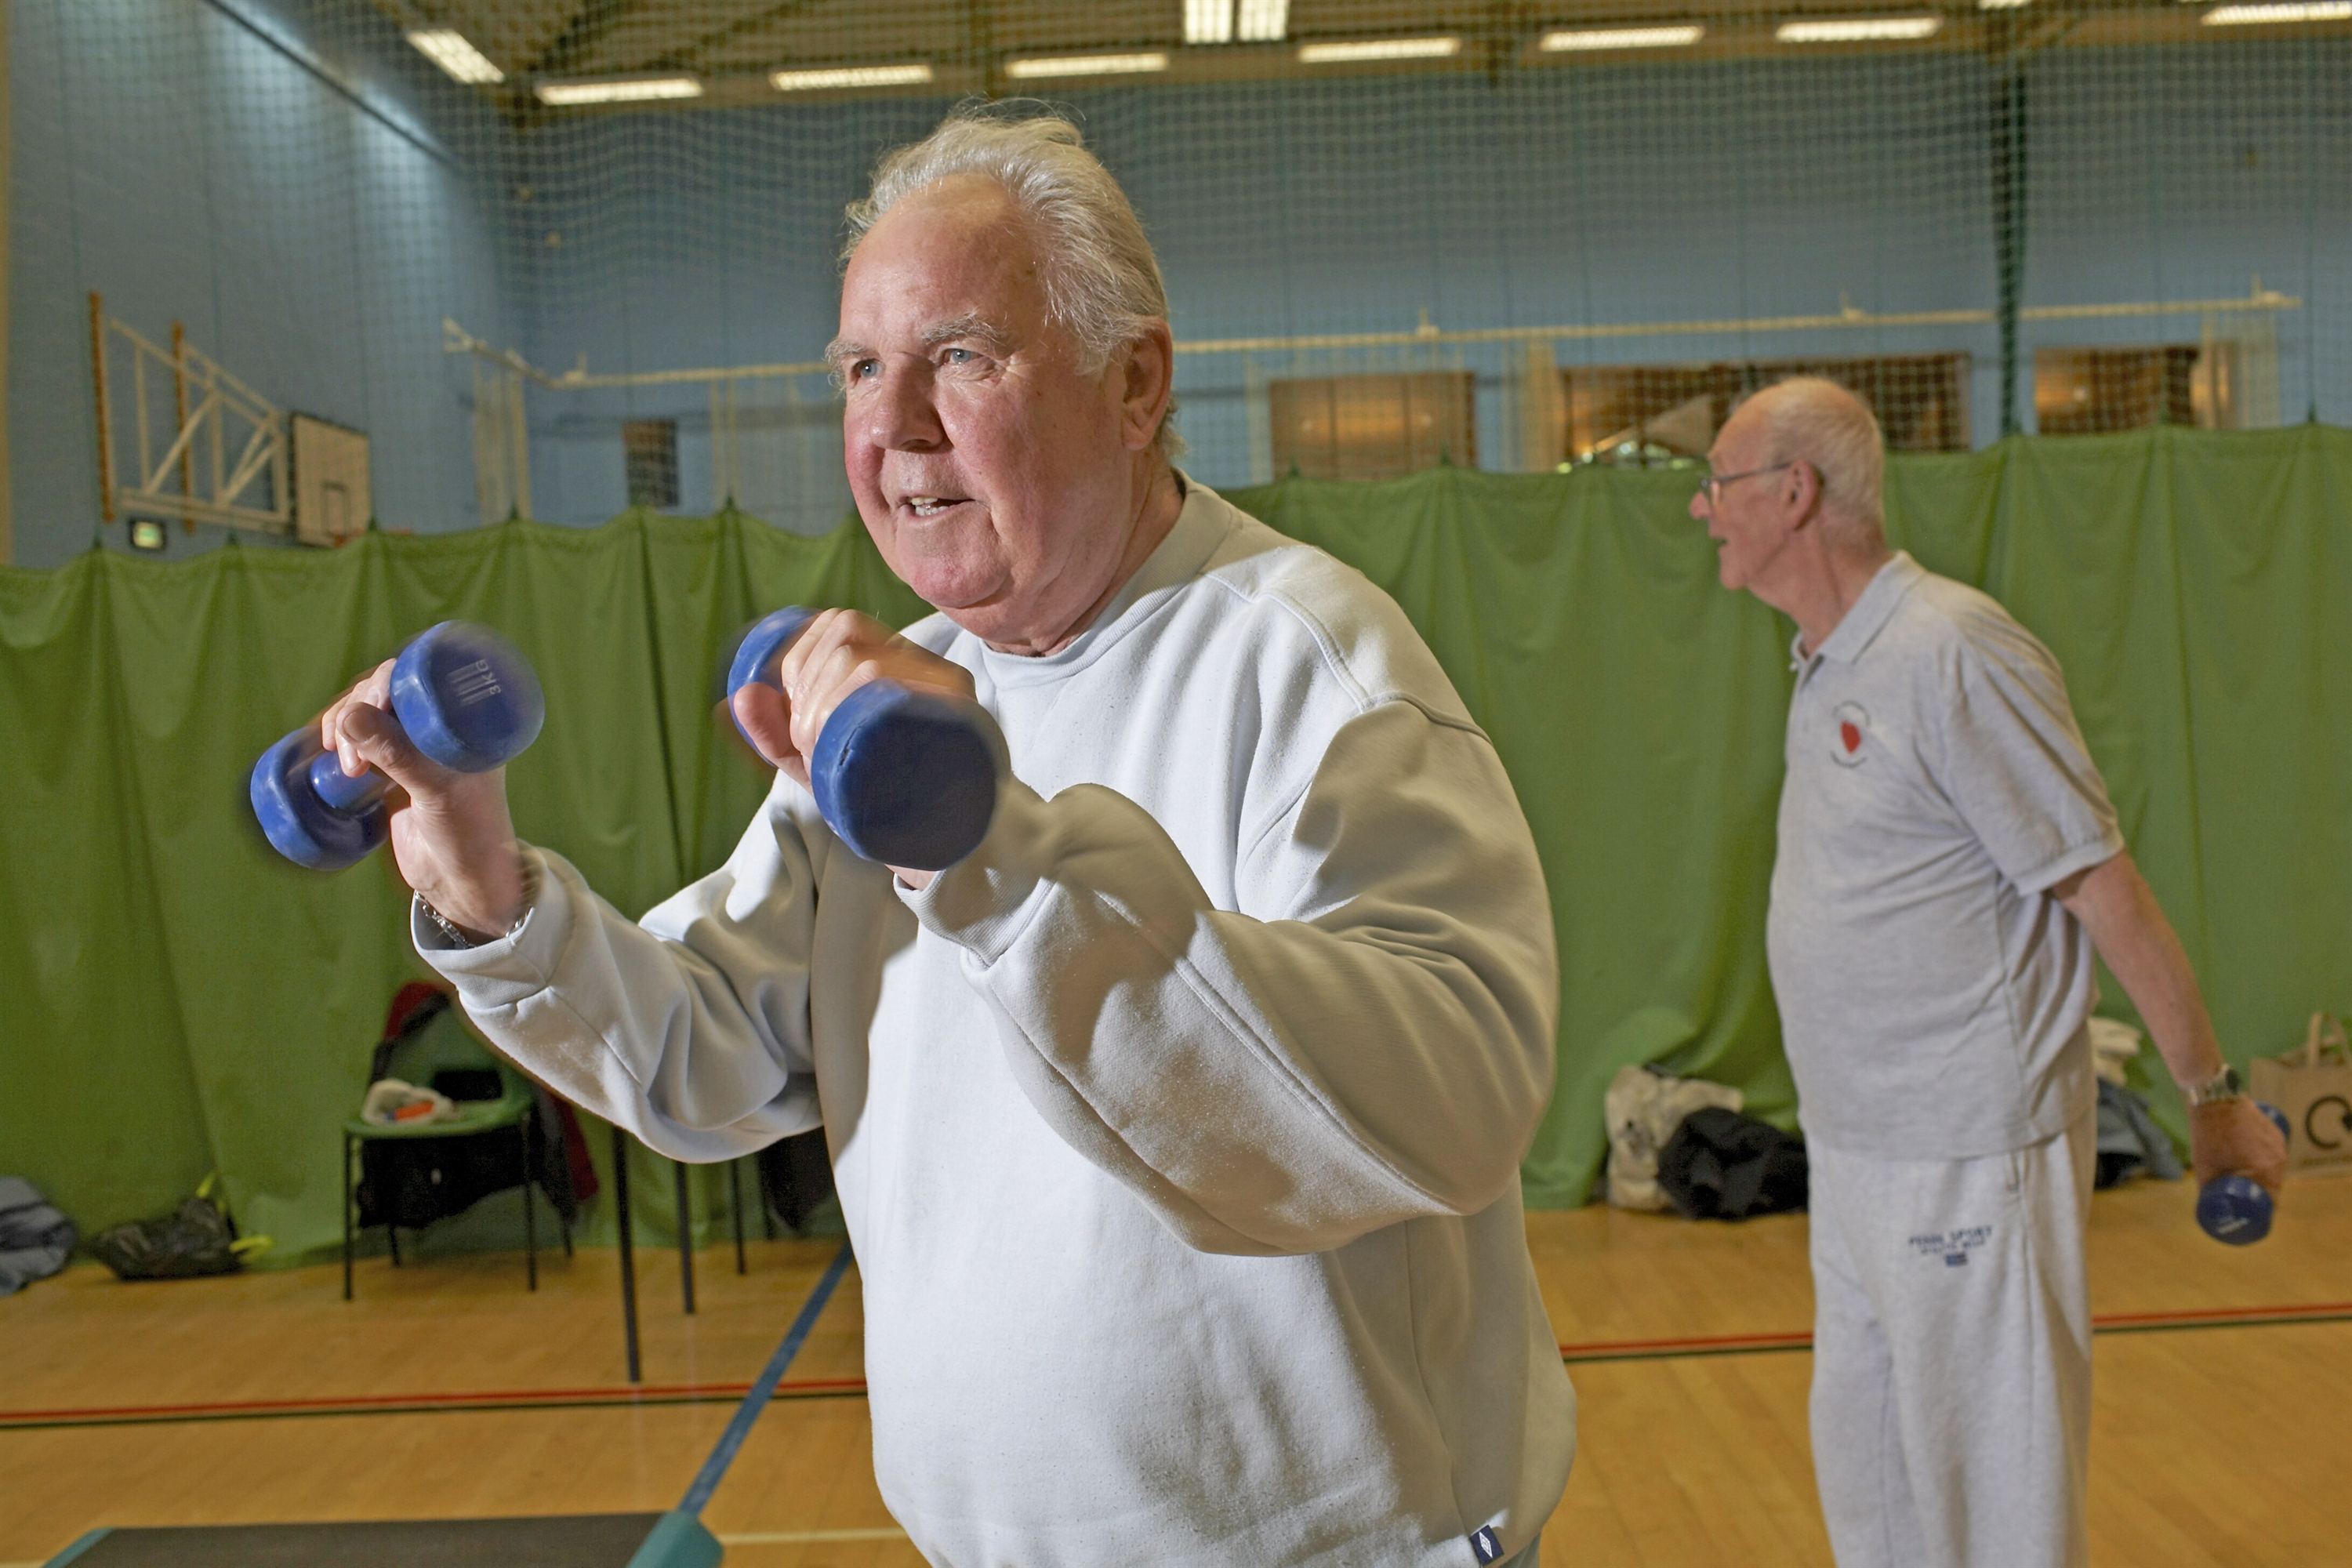 the lack of exercise among senior For senior citizens,  regard to participation in physical activity and exercise the lack of  barriers to participation in physical activity and exercise among .